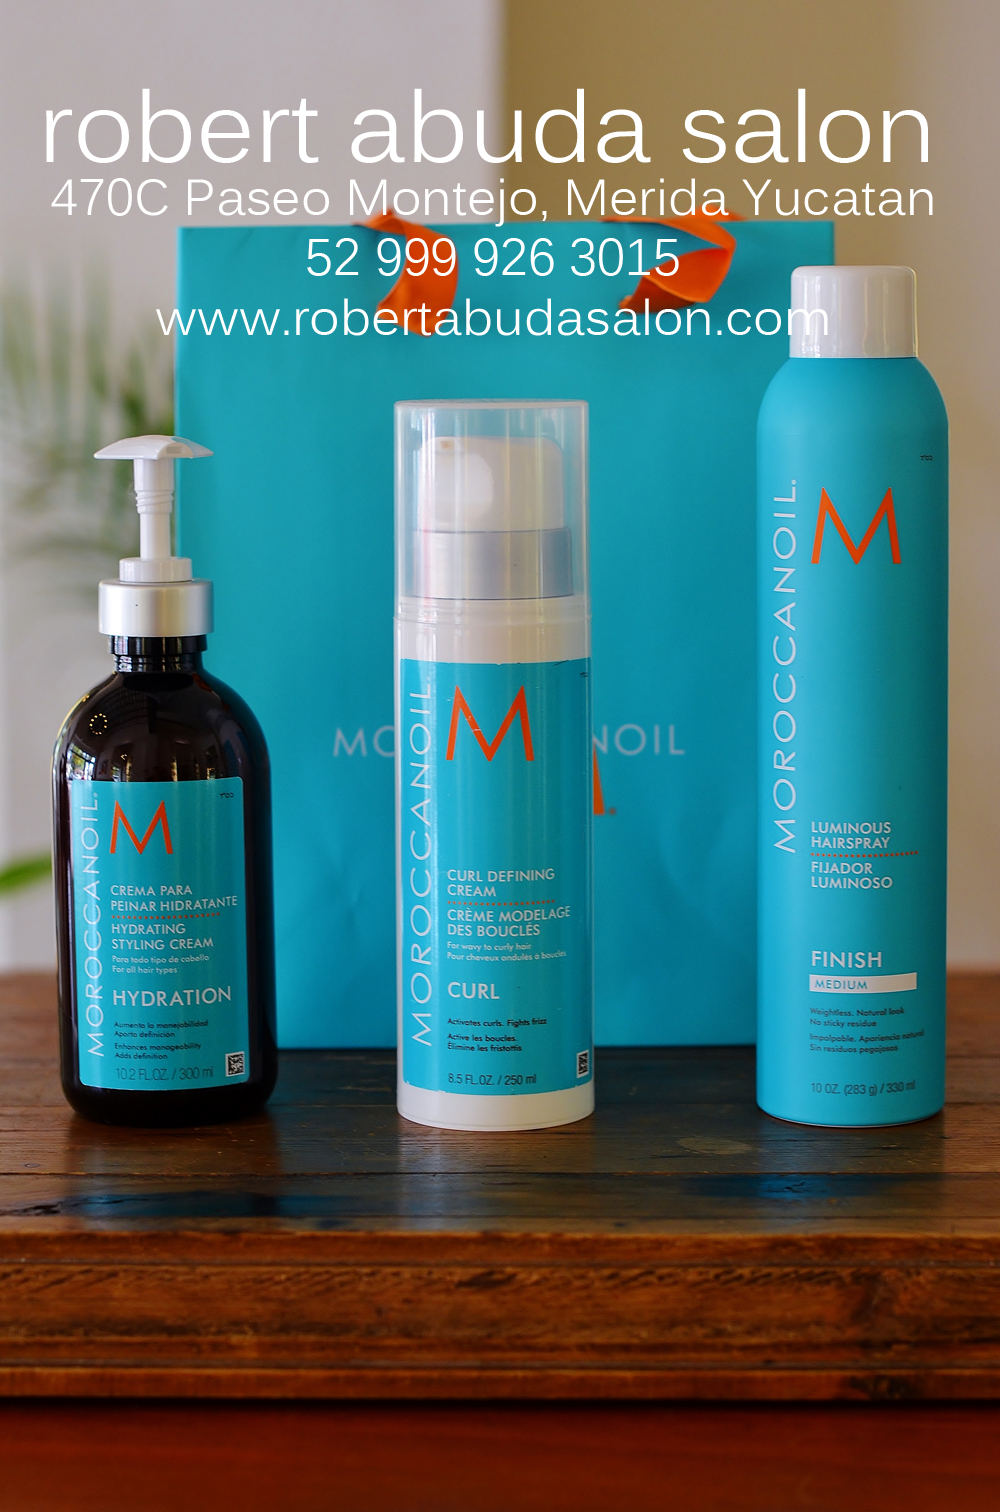 moroccan oil salon de belleza merida 10